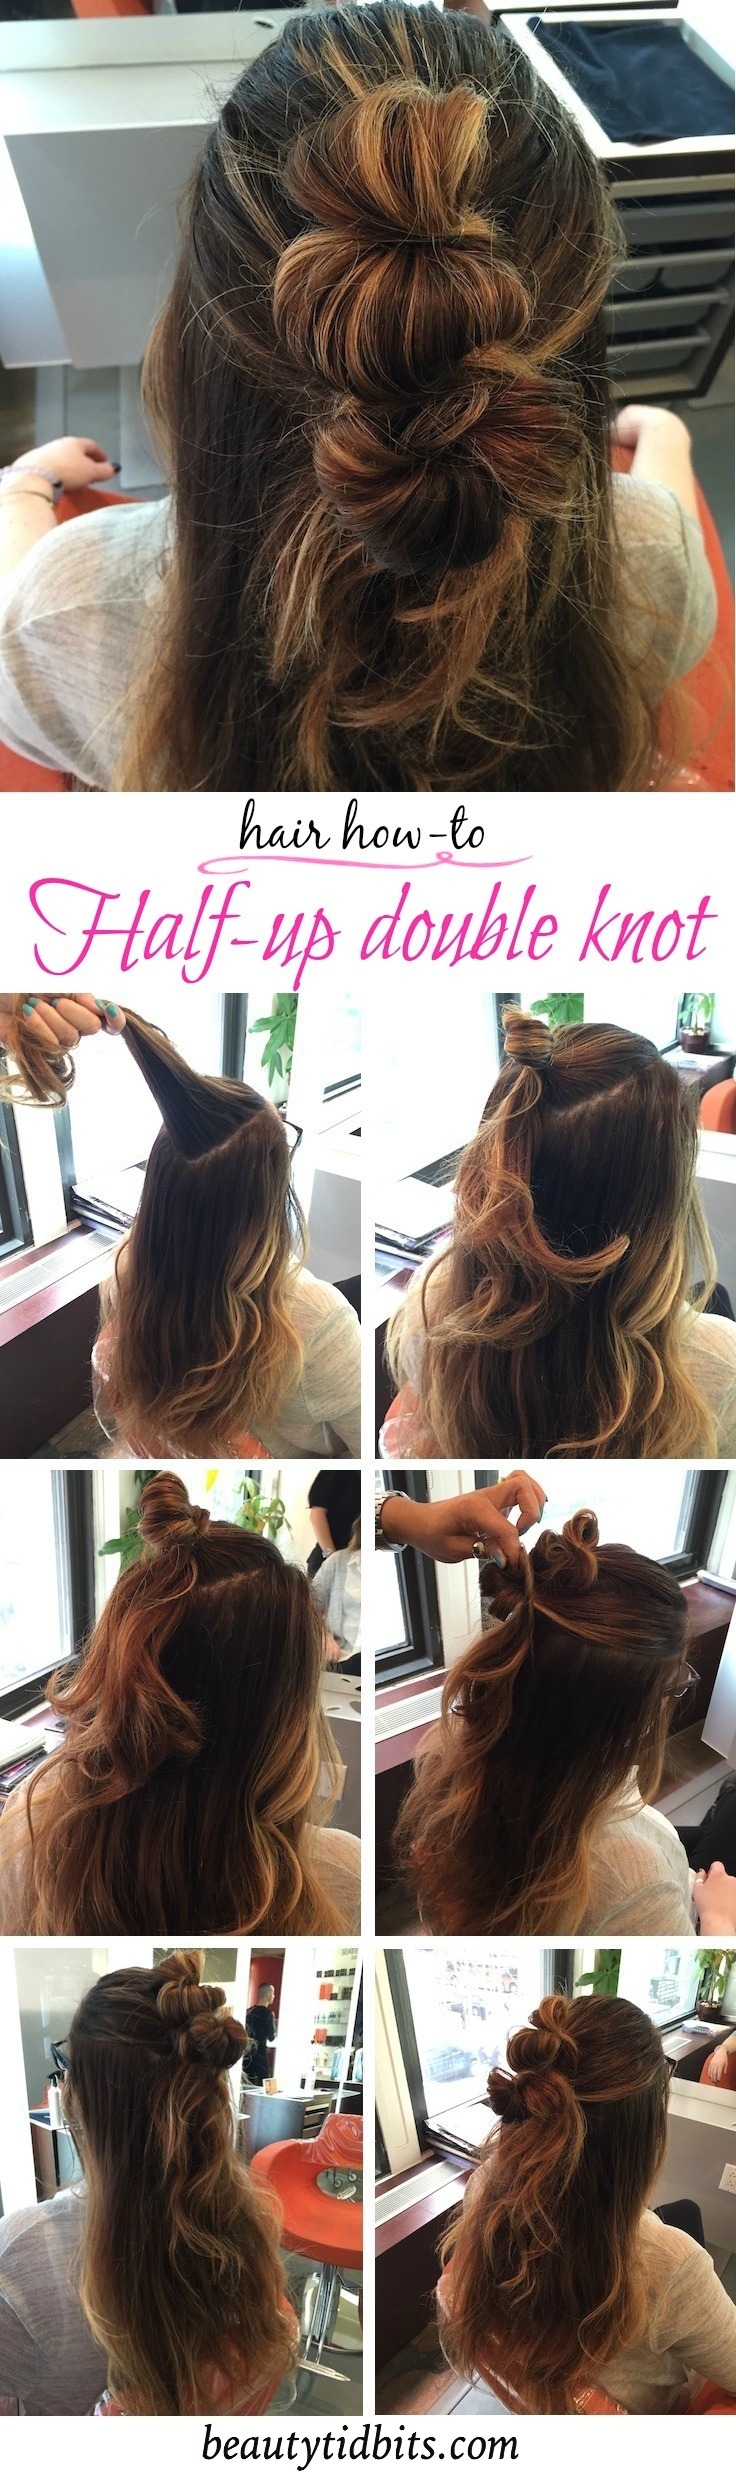 Ideal for natural texture or 2nd (even 3rd!) day hair, this Half-up double knot style works with any length and texture. A lifesaver for frizzy hair days and so easy to create !